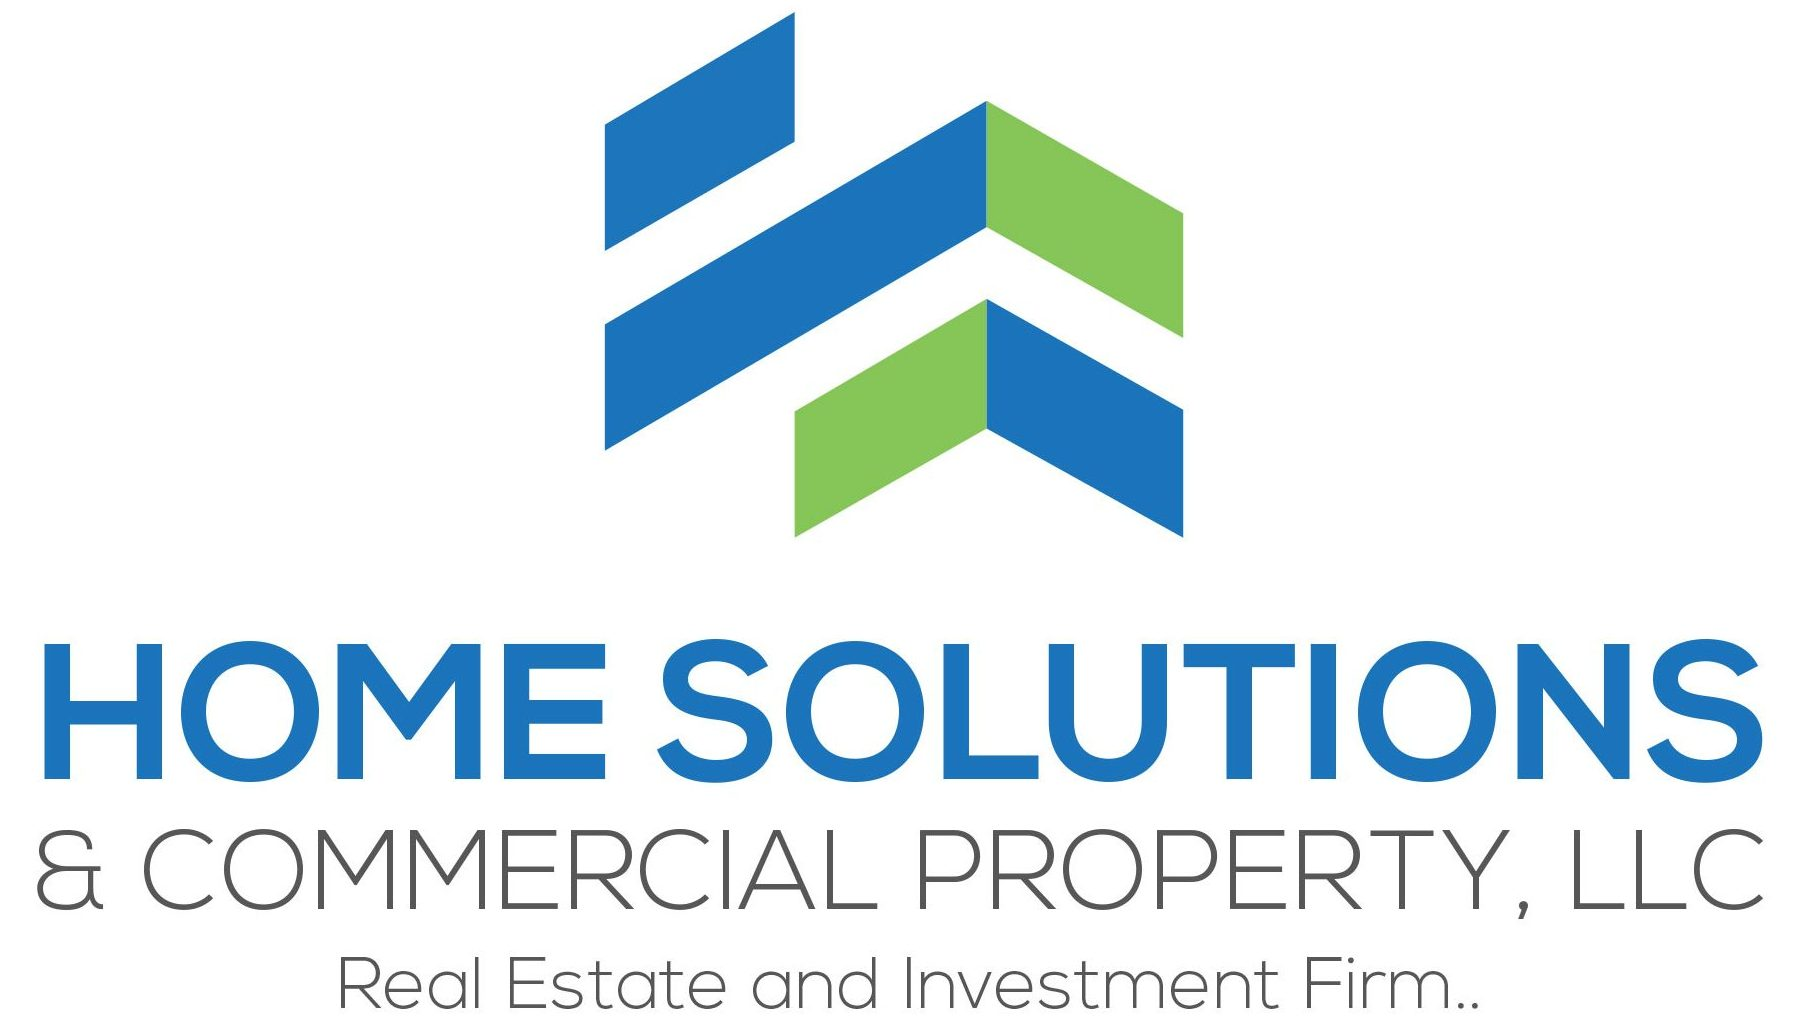 Home Solutions & Commercial Property, LLC